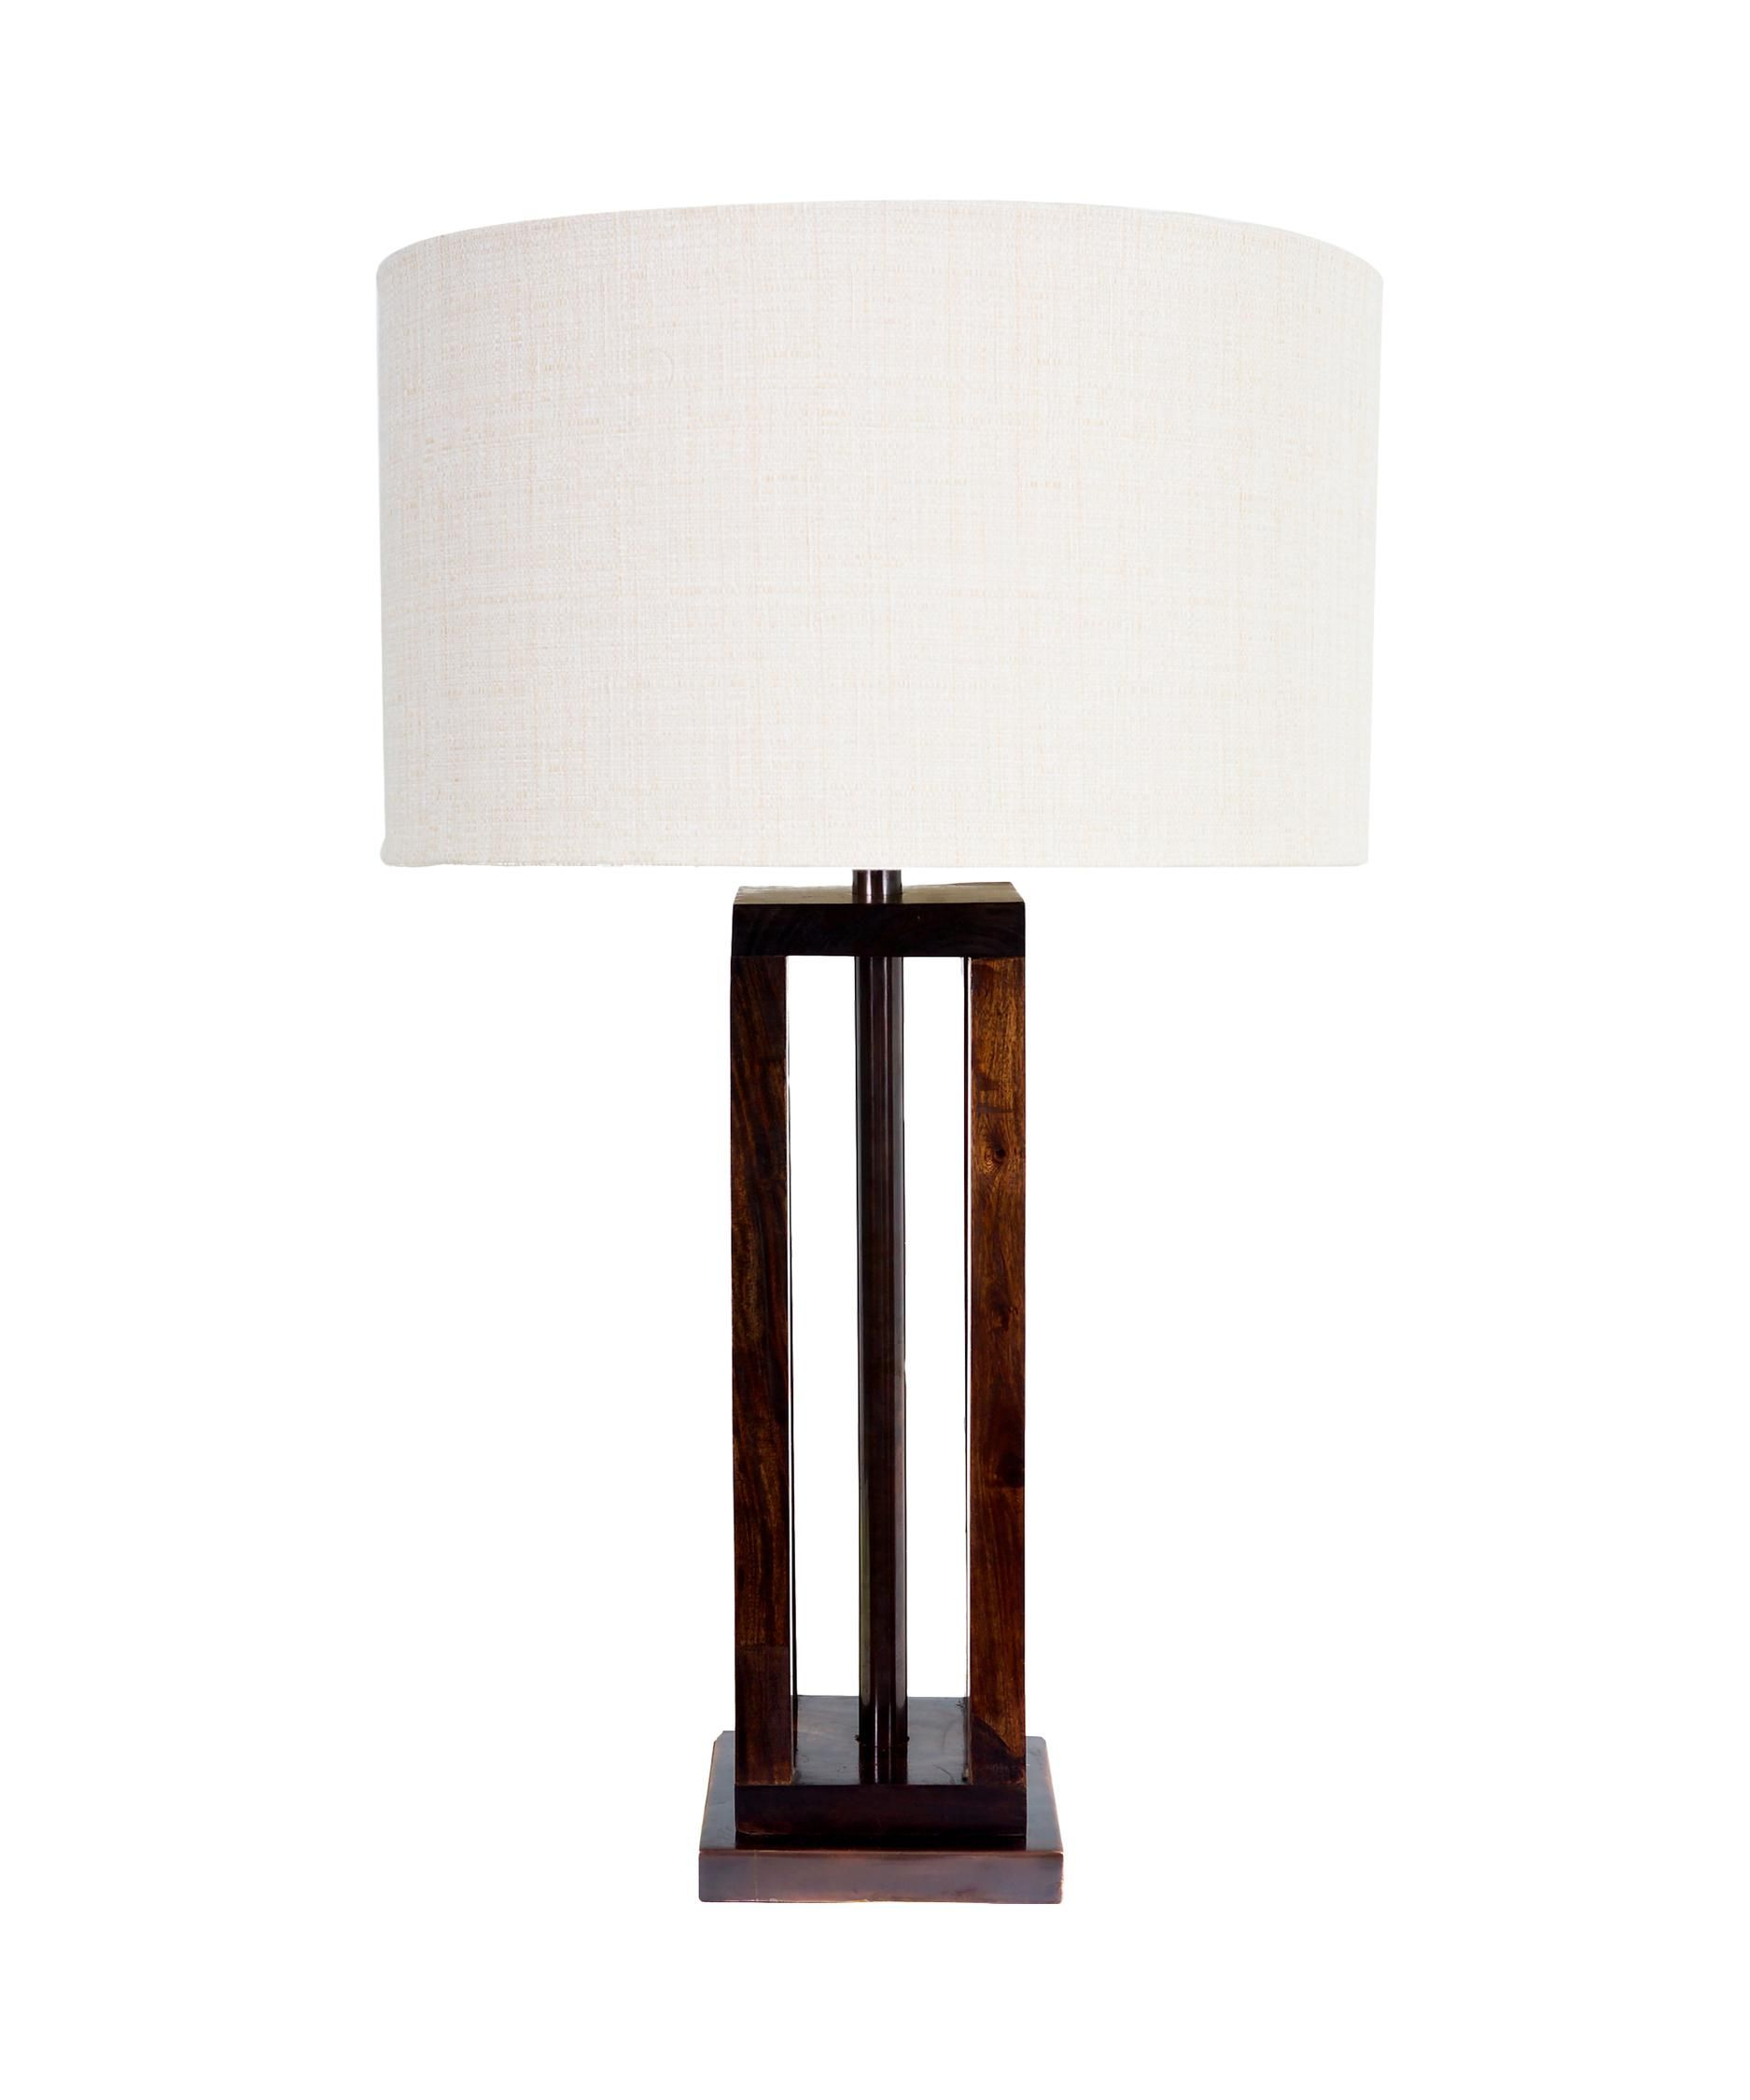 Frederick cooper 65159 hollywood 31 inch table lamp lamps frederick cooper 65159 hollywood 31 inch table lamp mozeypictures Gallery